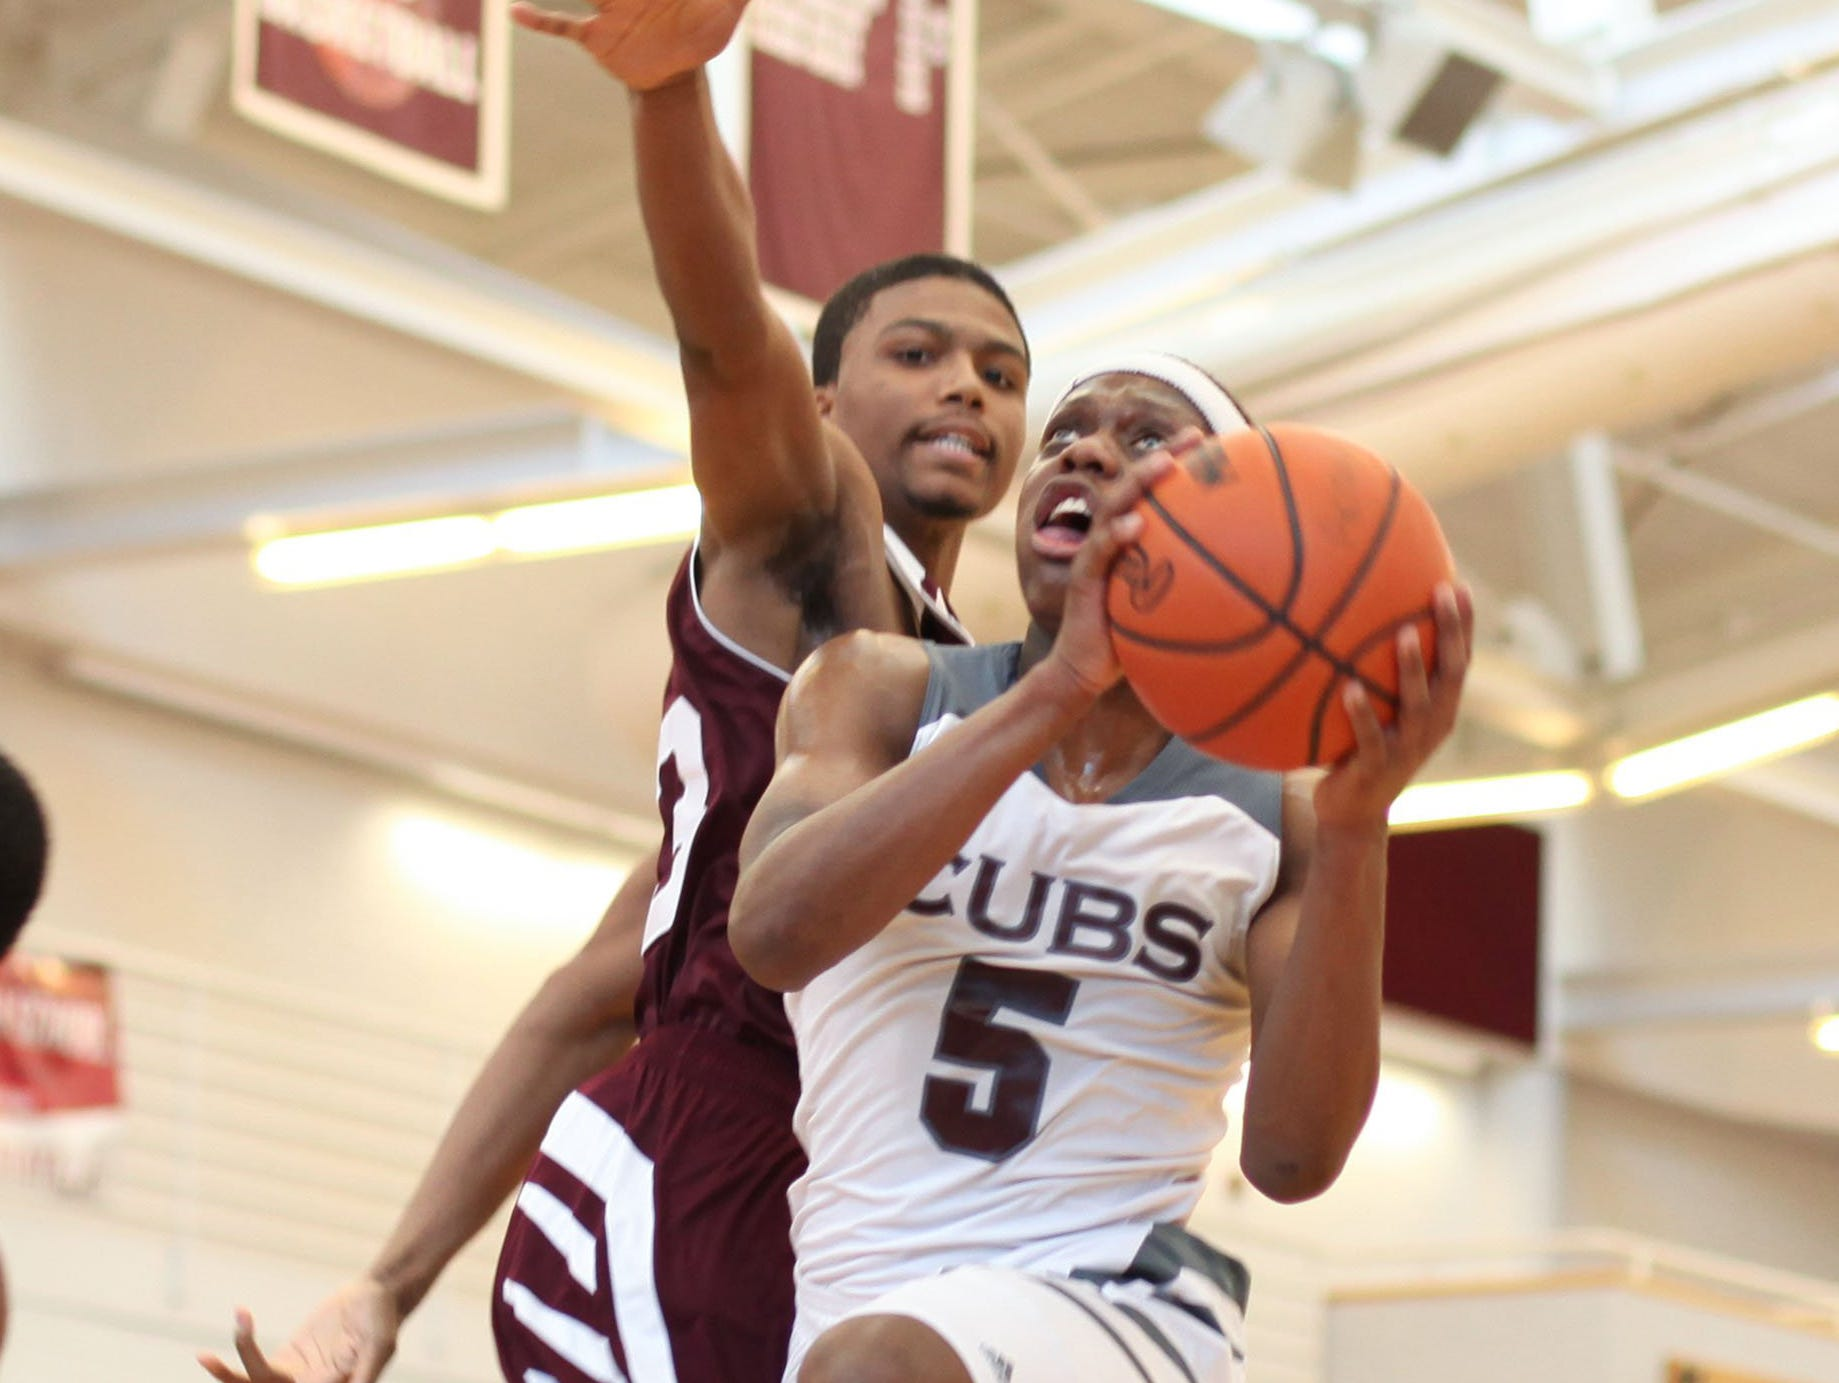 Renaissance's Daelyn Davis tries to block U-D Jesuit's Cassius Winston as he goes for a shot during a game.